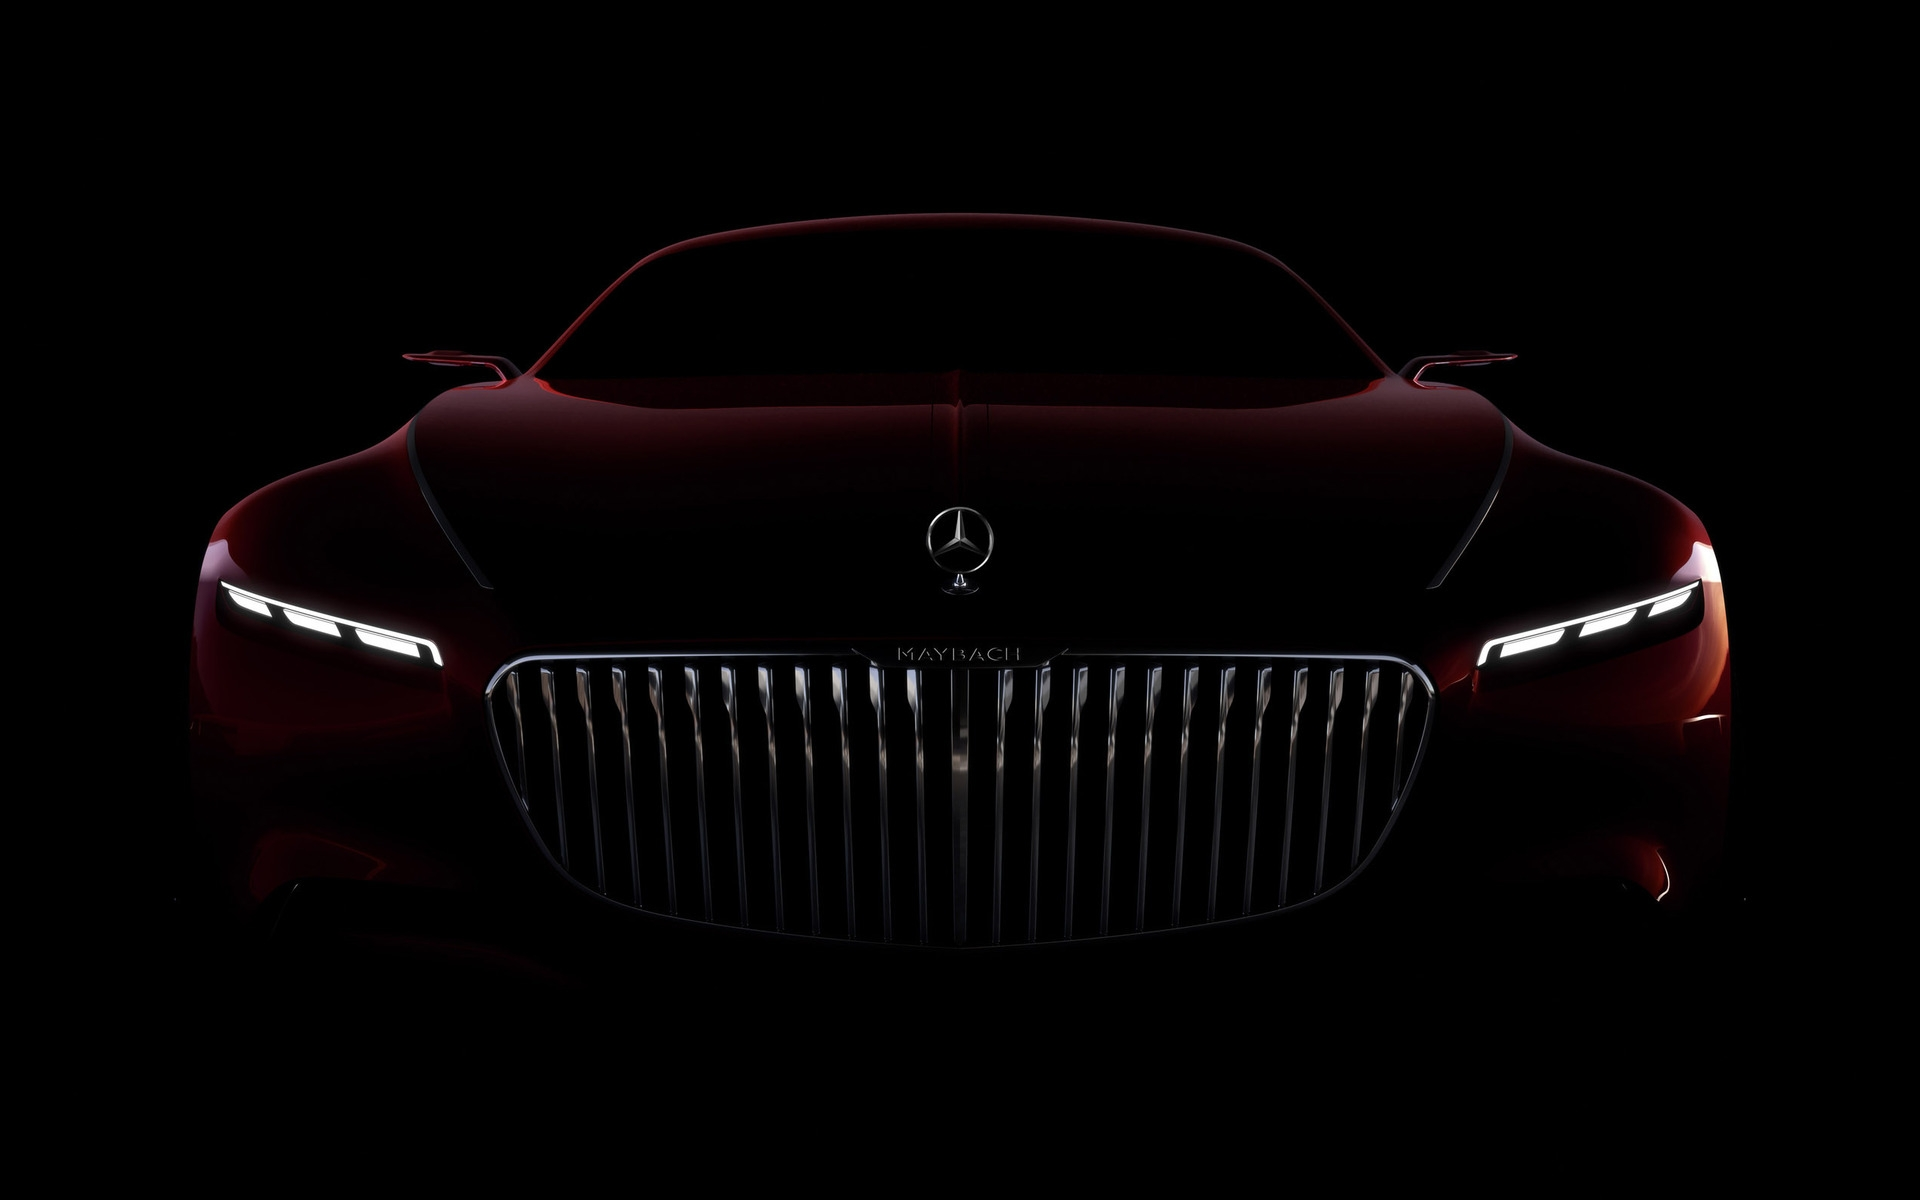 Amazing Vision Mercedes Maybach 6 2016 for 1920 x 1200 widescreen resolution